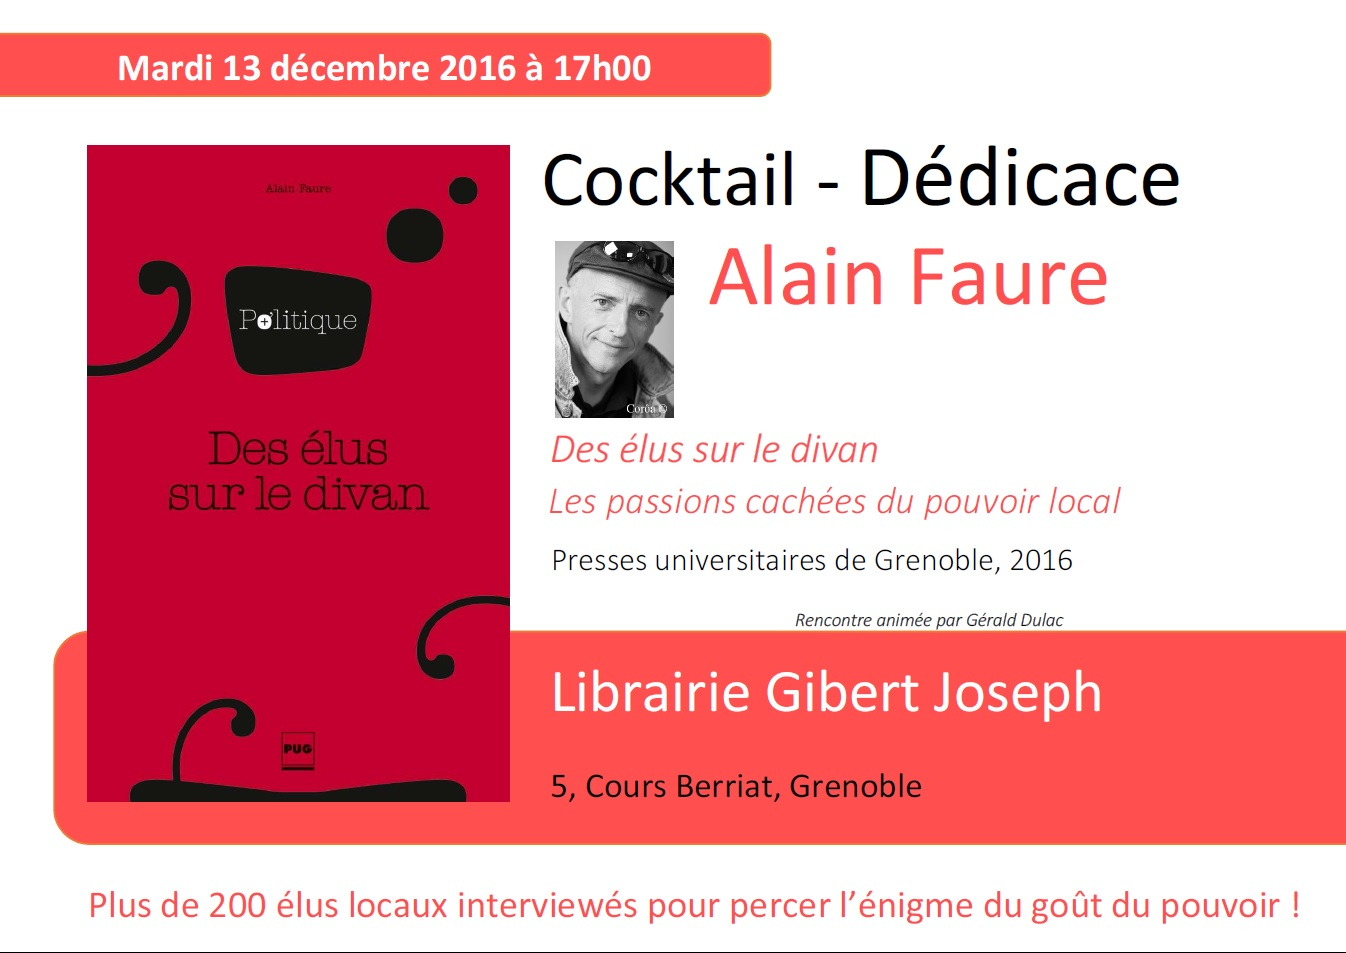 invitation-cocktail-dedicace